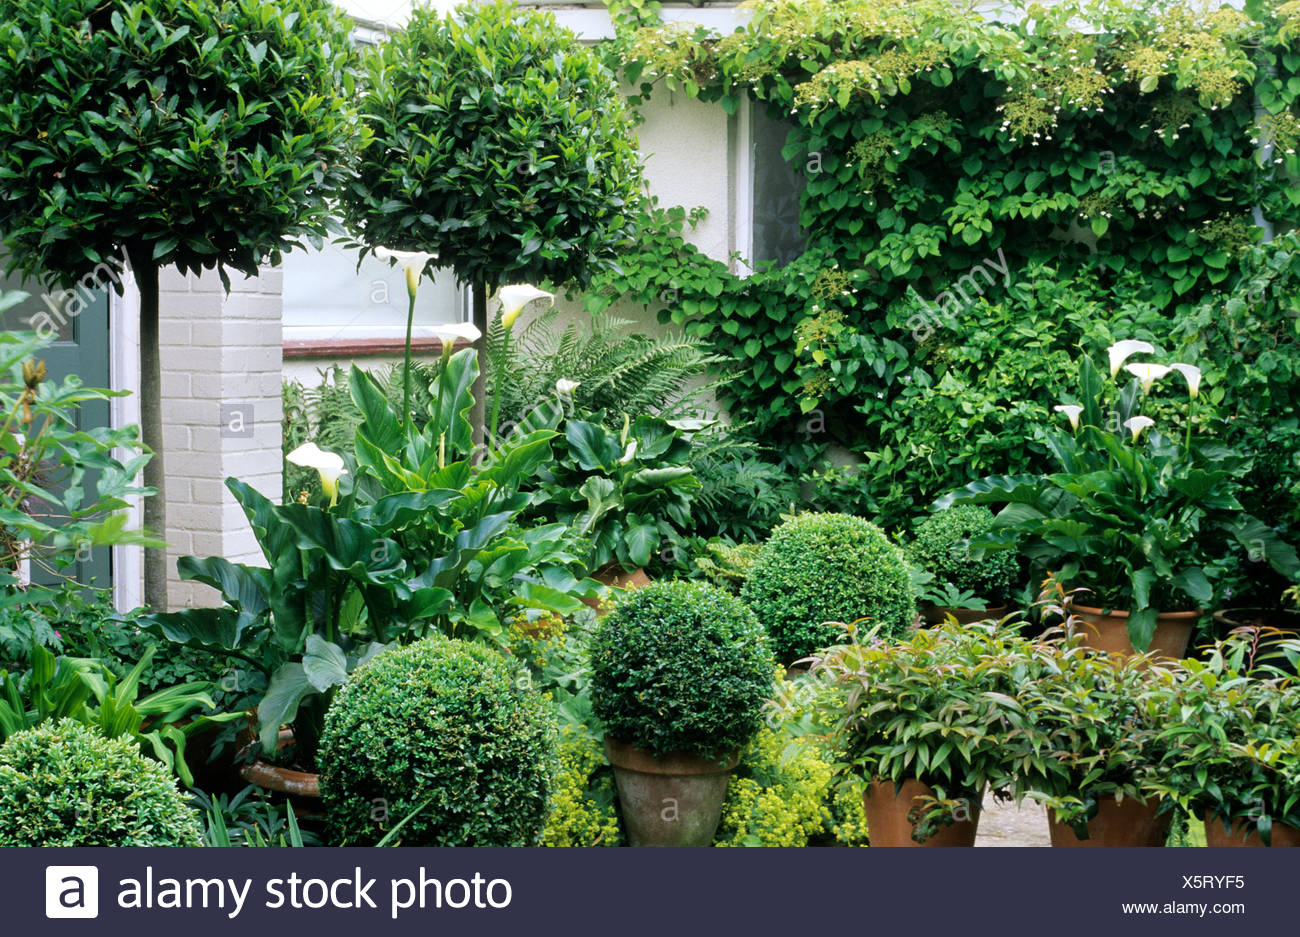 Green And White Topiary Garden Box Standard Bay Balls Zantedeschia Back Door Patio Containers Pots Stock Photo Alamy